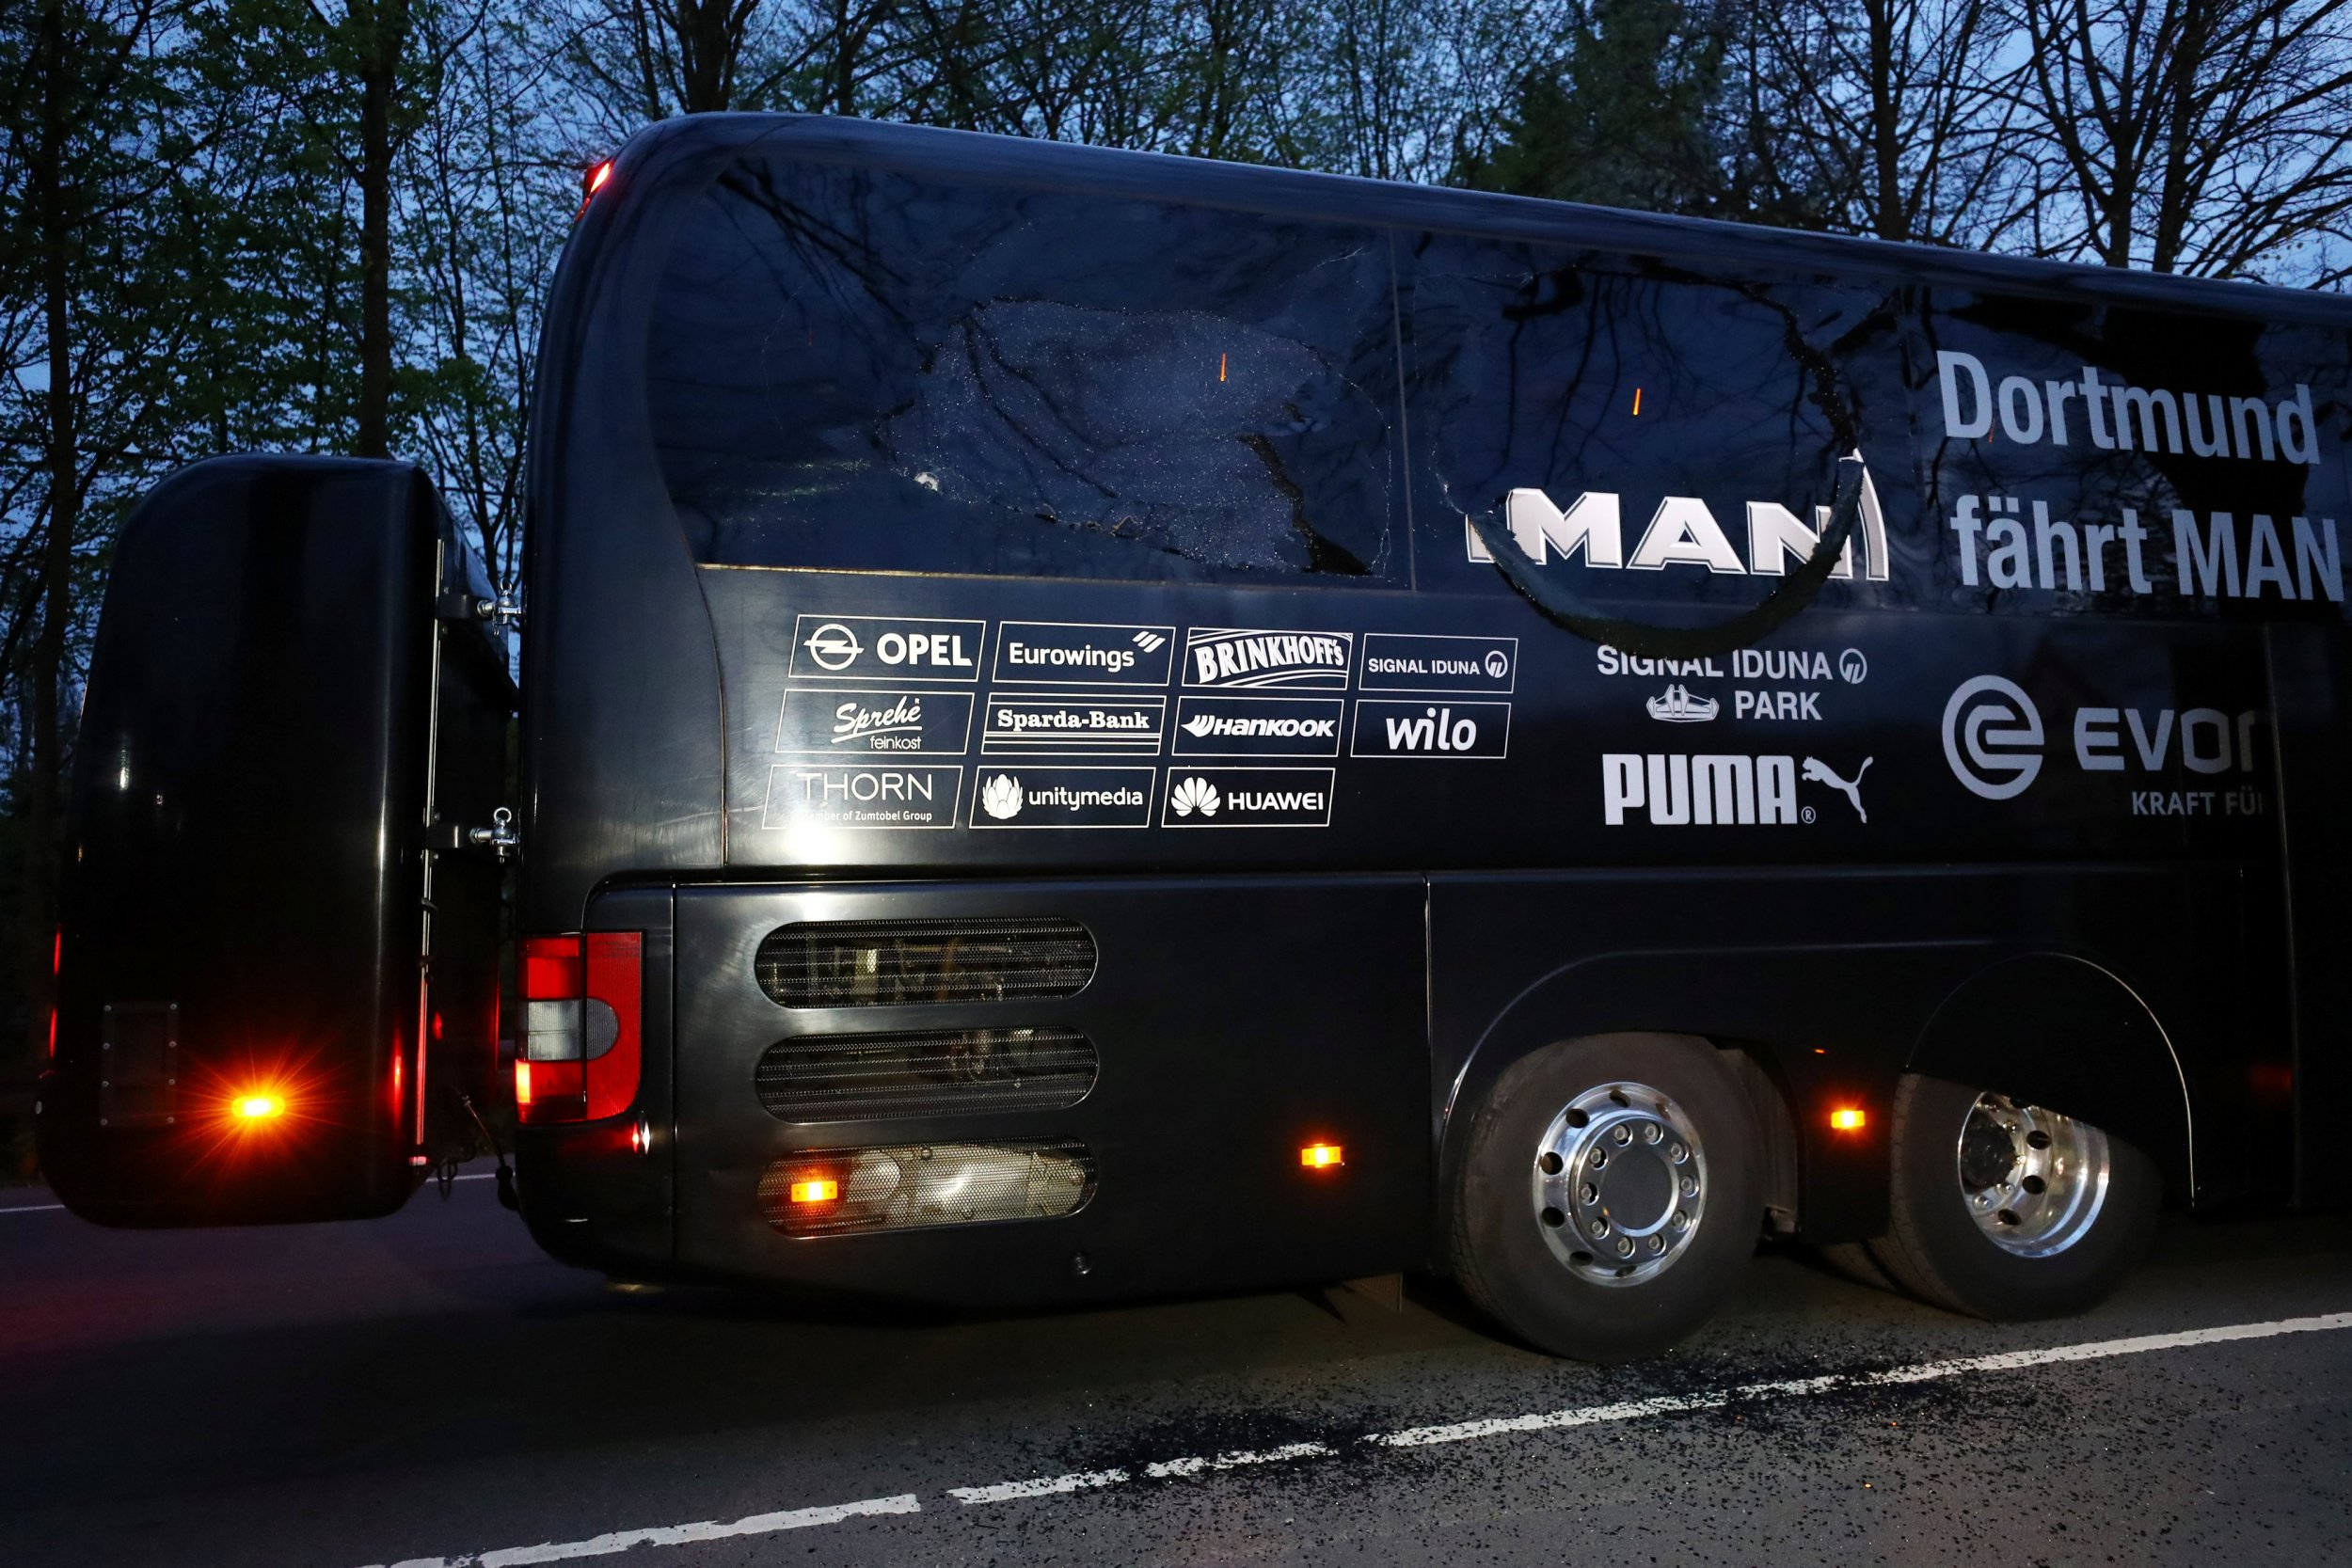 Bus in Dortmund Blast